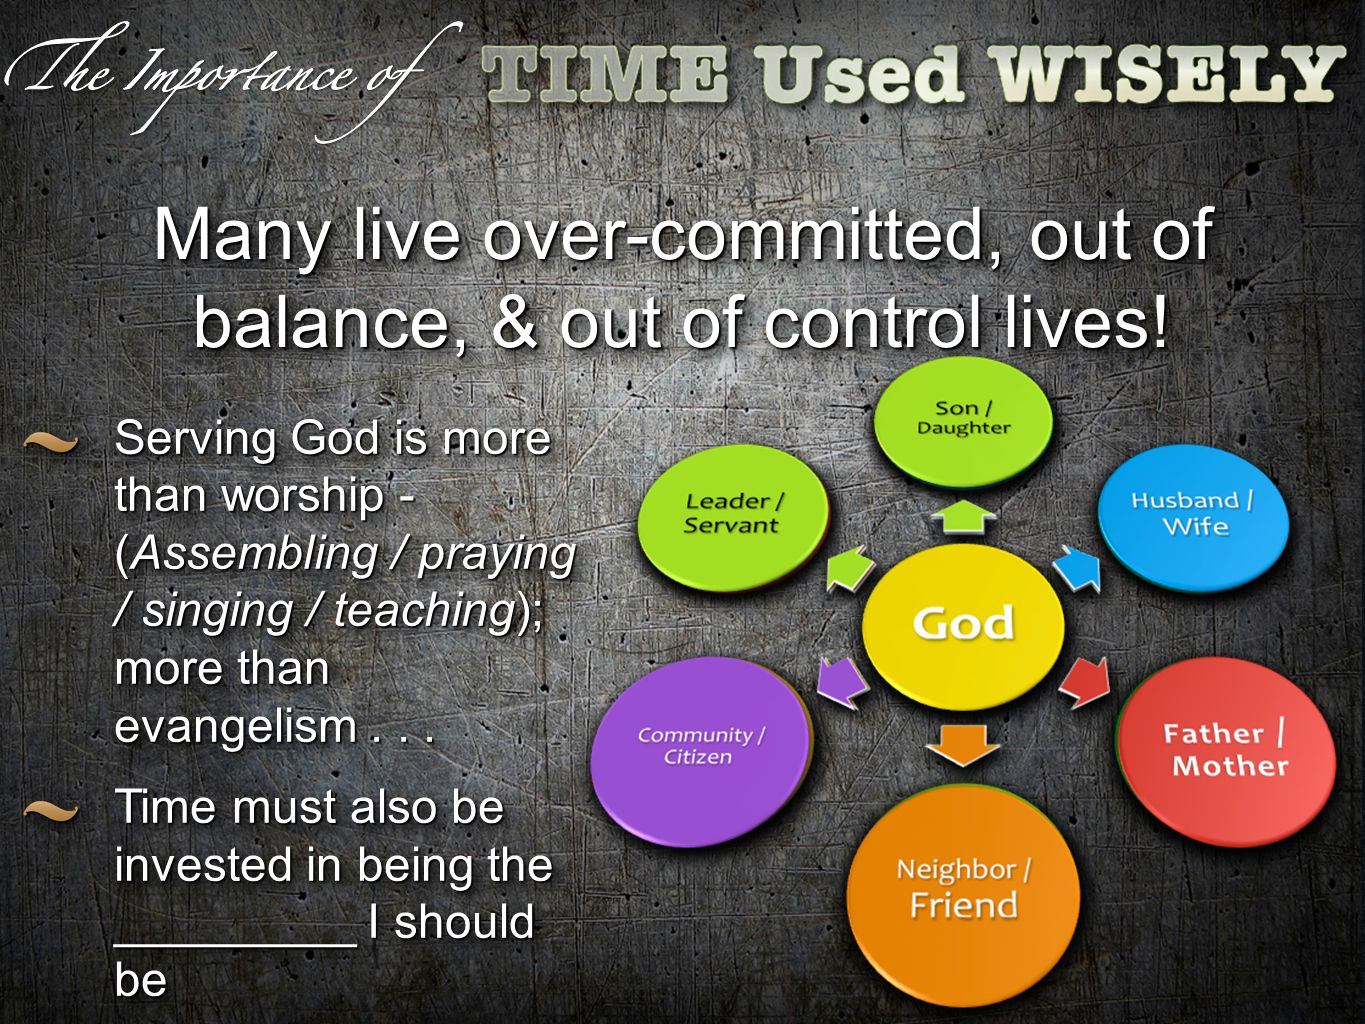 Many live over-committed, out of balance, & out of control lives.